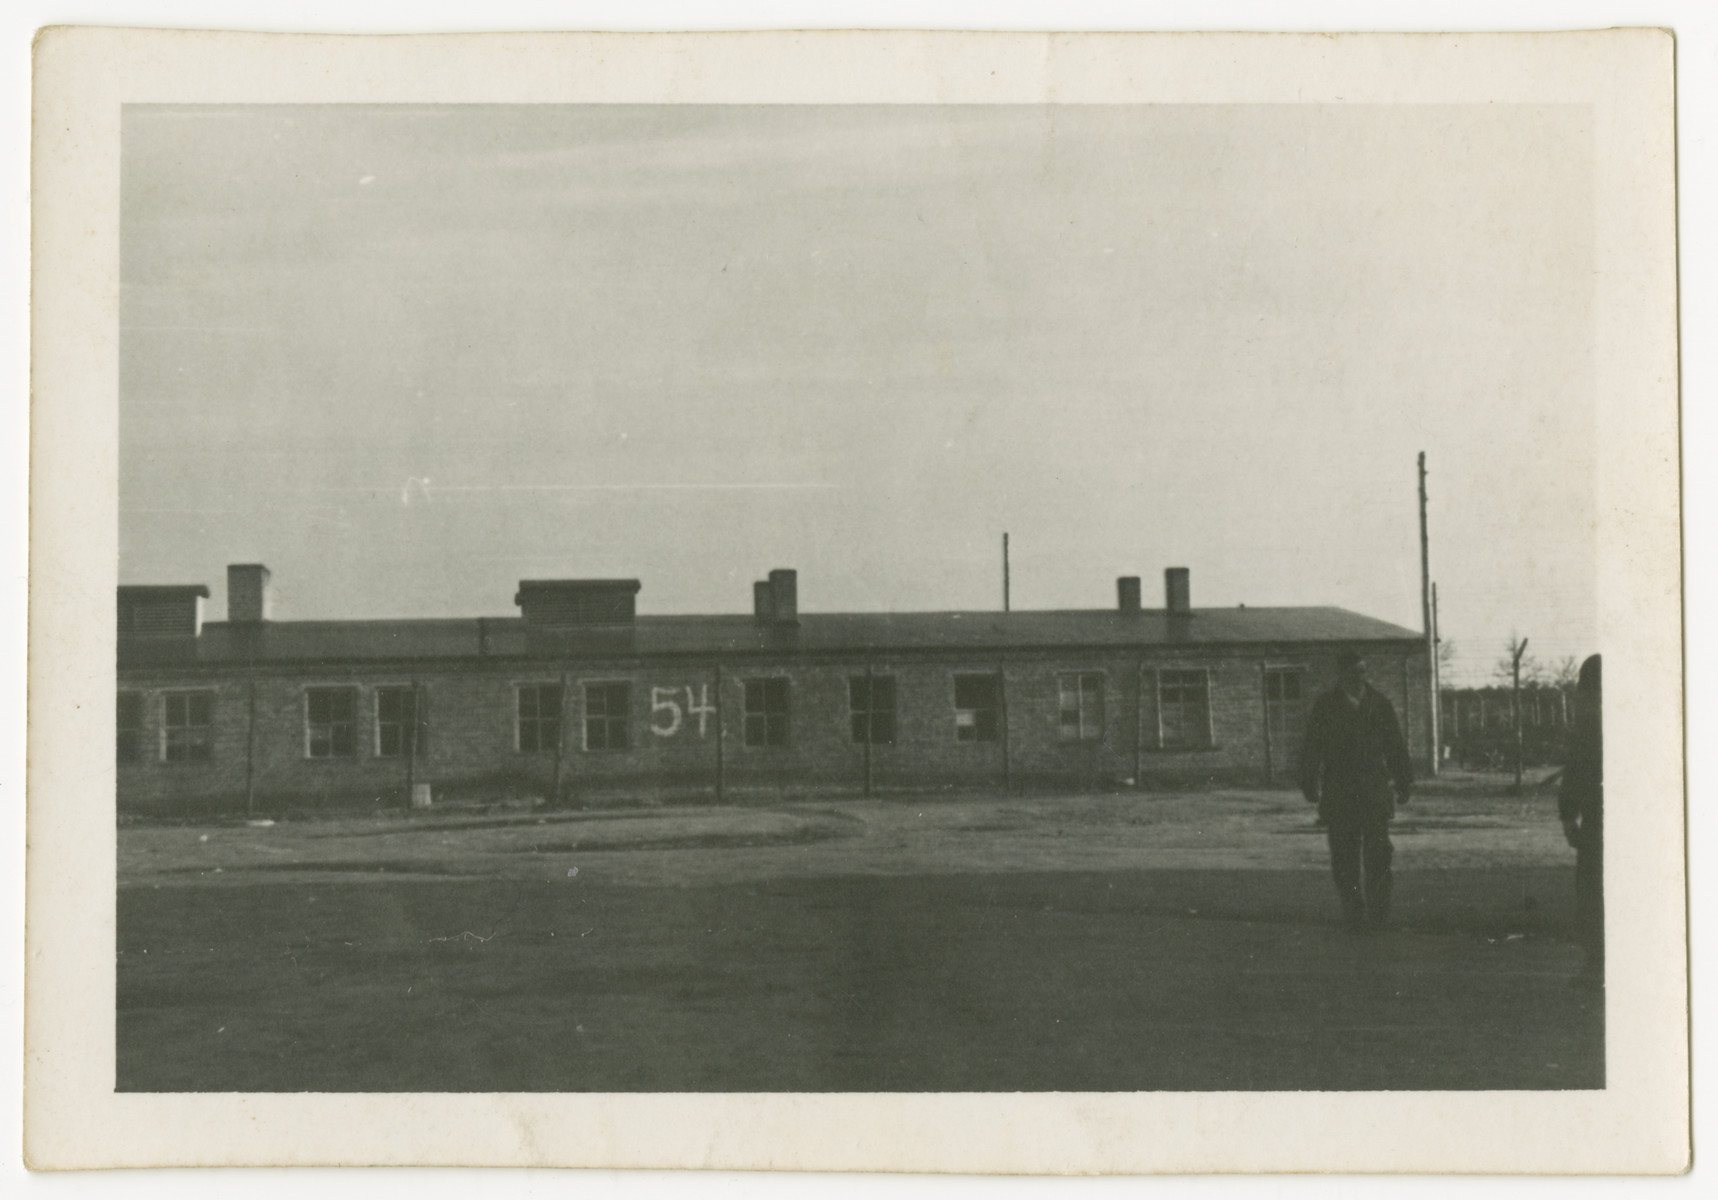 An exterior view of building 54 at Woebbelin concentration camp.